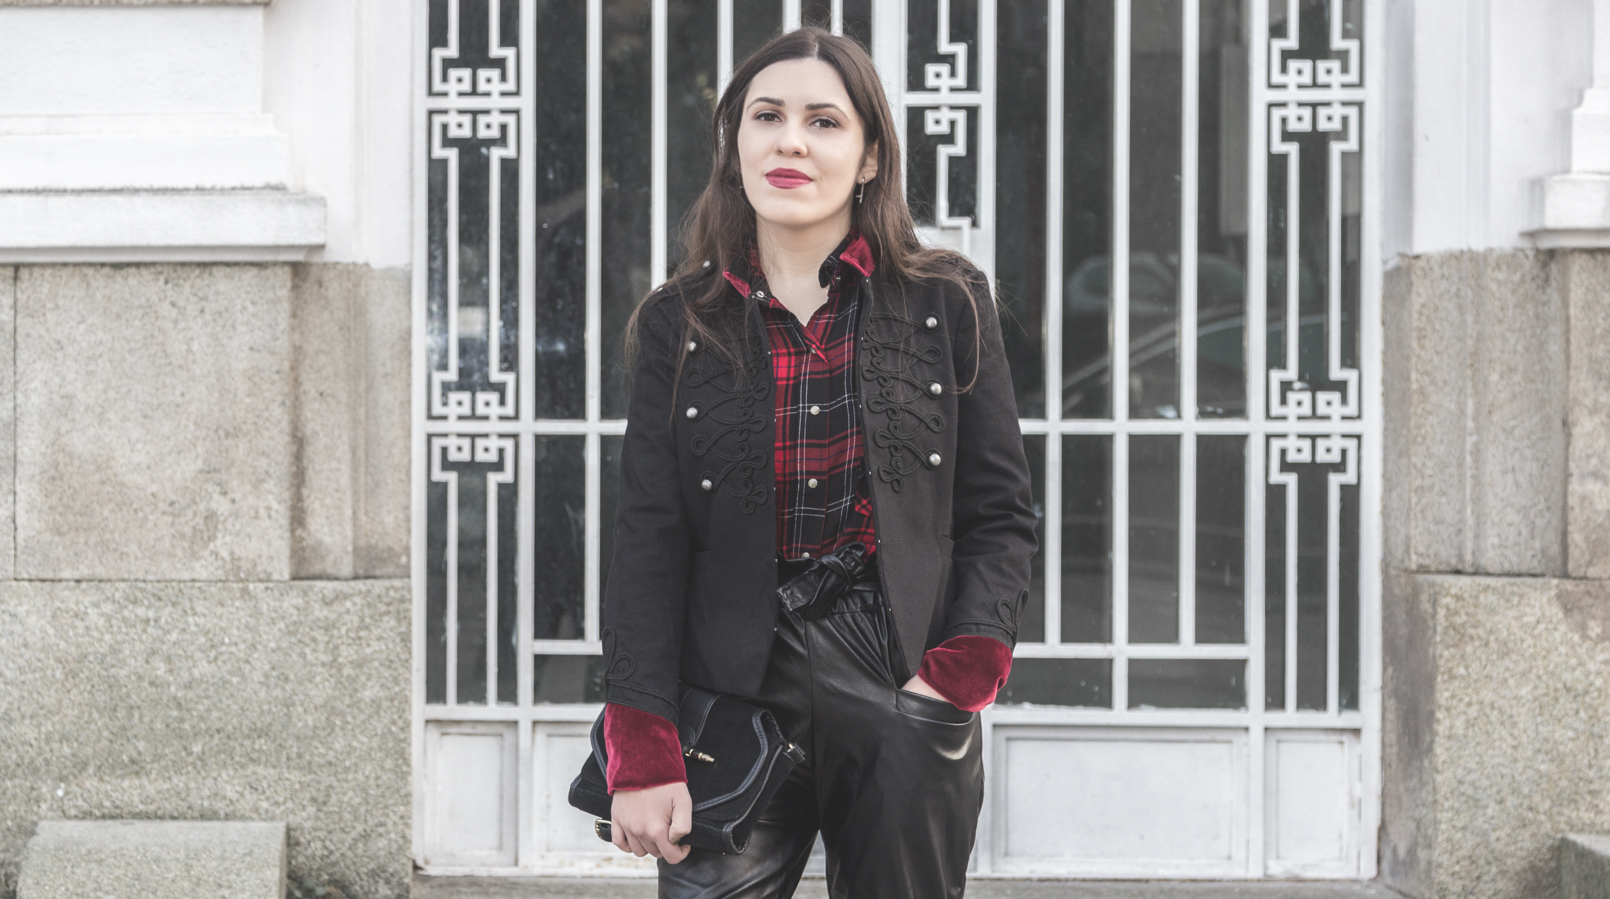 Le Fashionaire Surround yourself with people who make you better tartan red black zara shirt military black velvet red details stradivarius 1924F EN